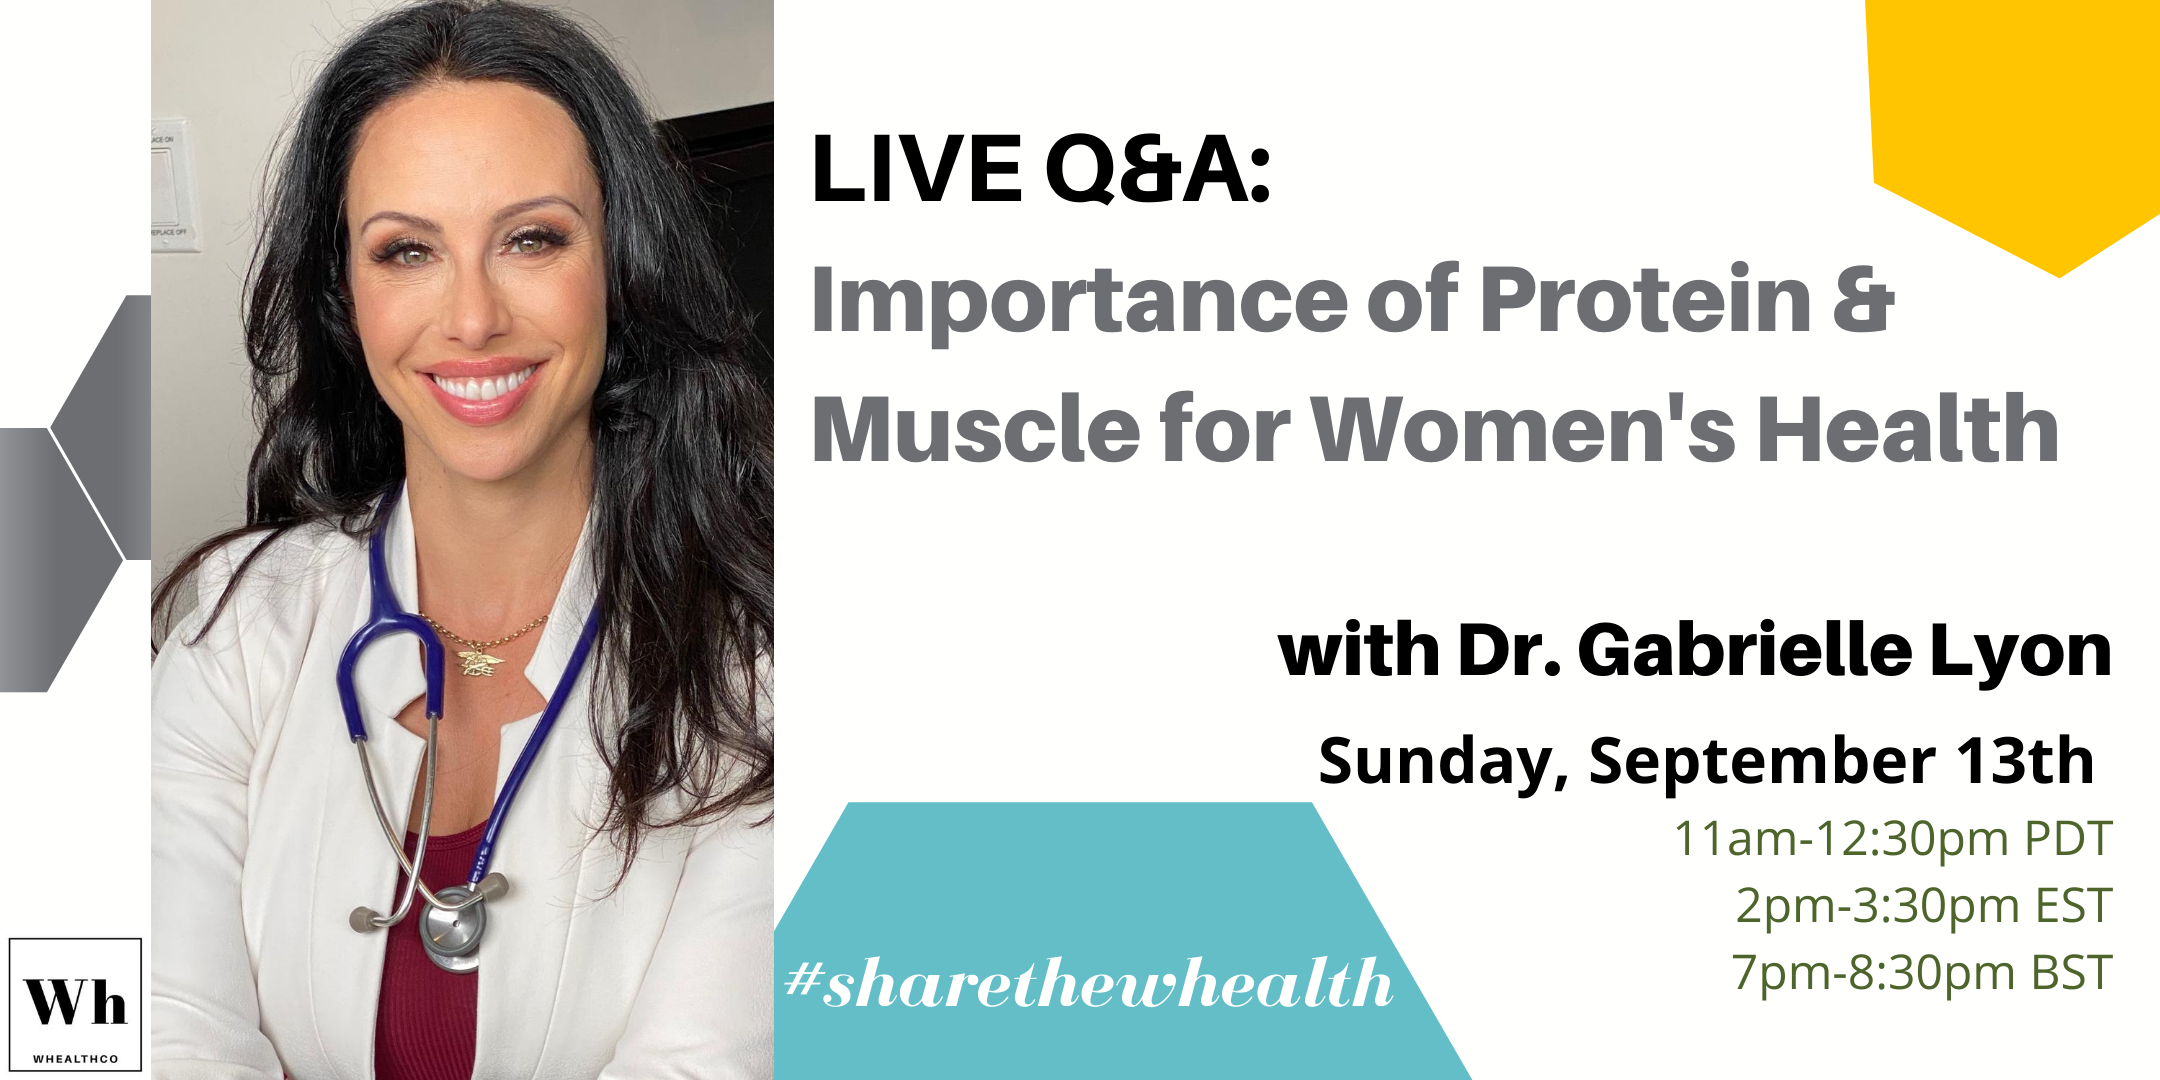 Importance of Protein and Muscle for Women with Dr. Gabrielle Lyon